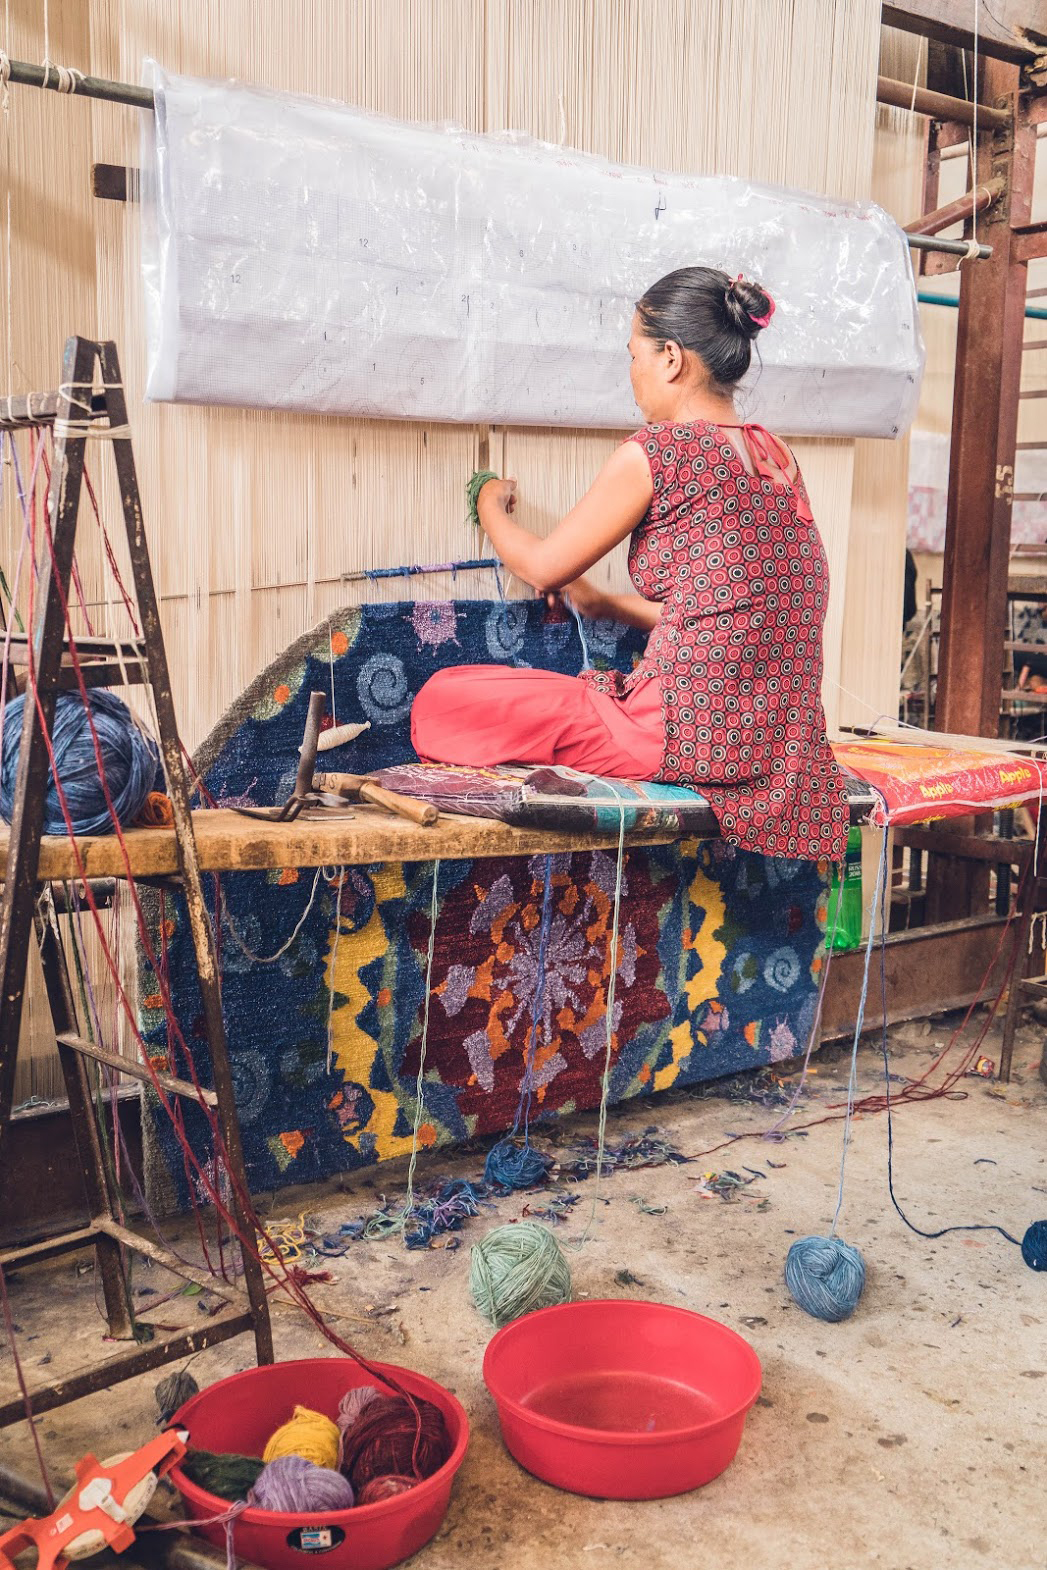 One of the rugs designed as part of the Crossroads and Avenues project launched by Kyle and Kath - Jan Kath Design is shown here on loom in Kathmandu, Nepal. | Image courtesy fo Kyle and Kath.